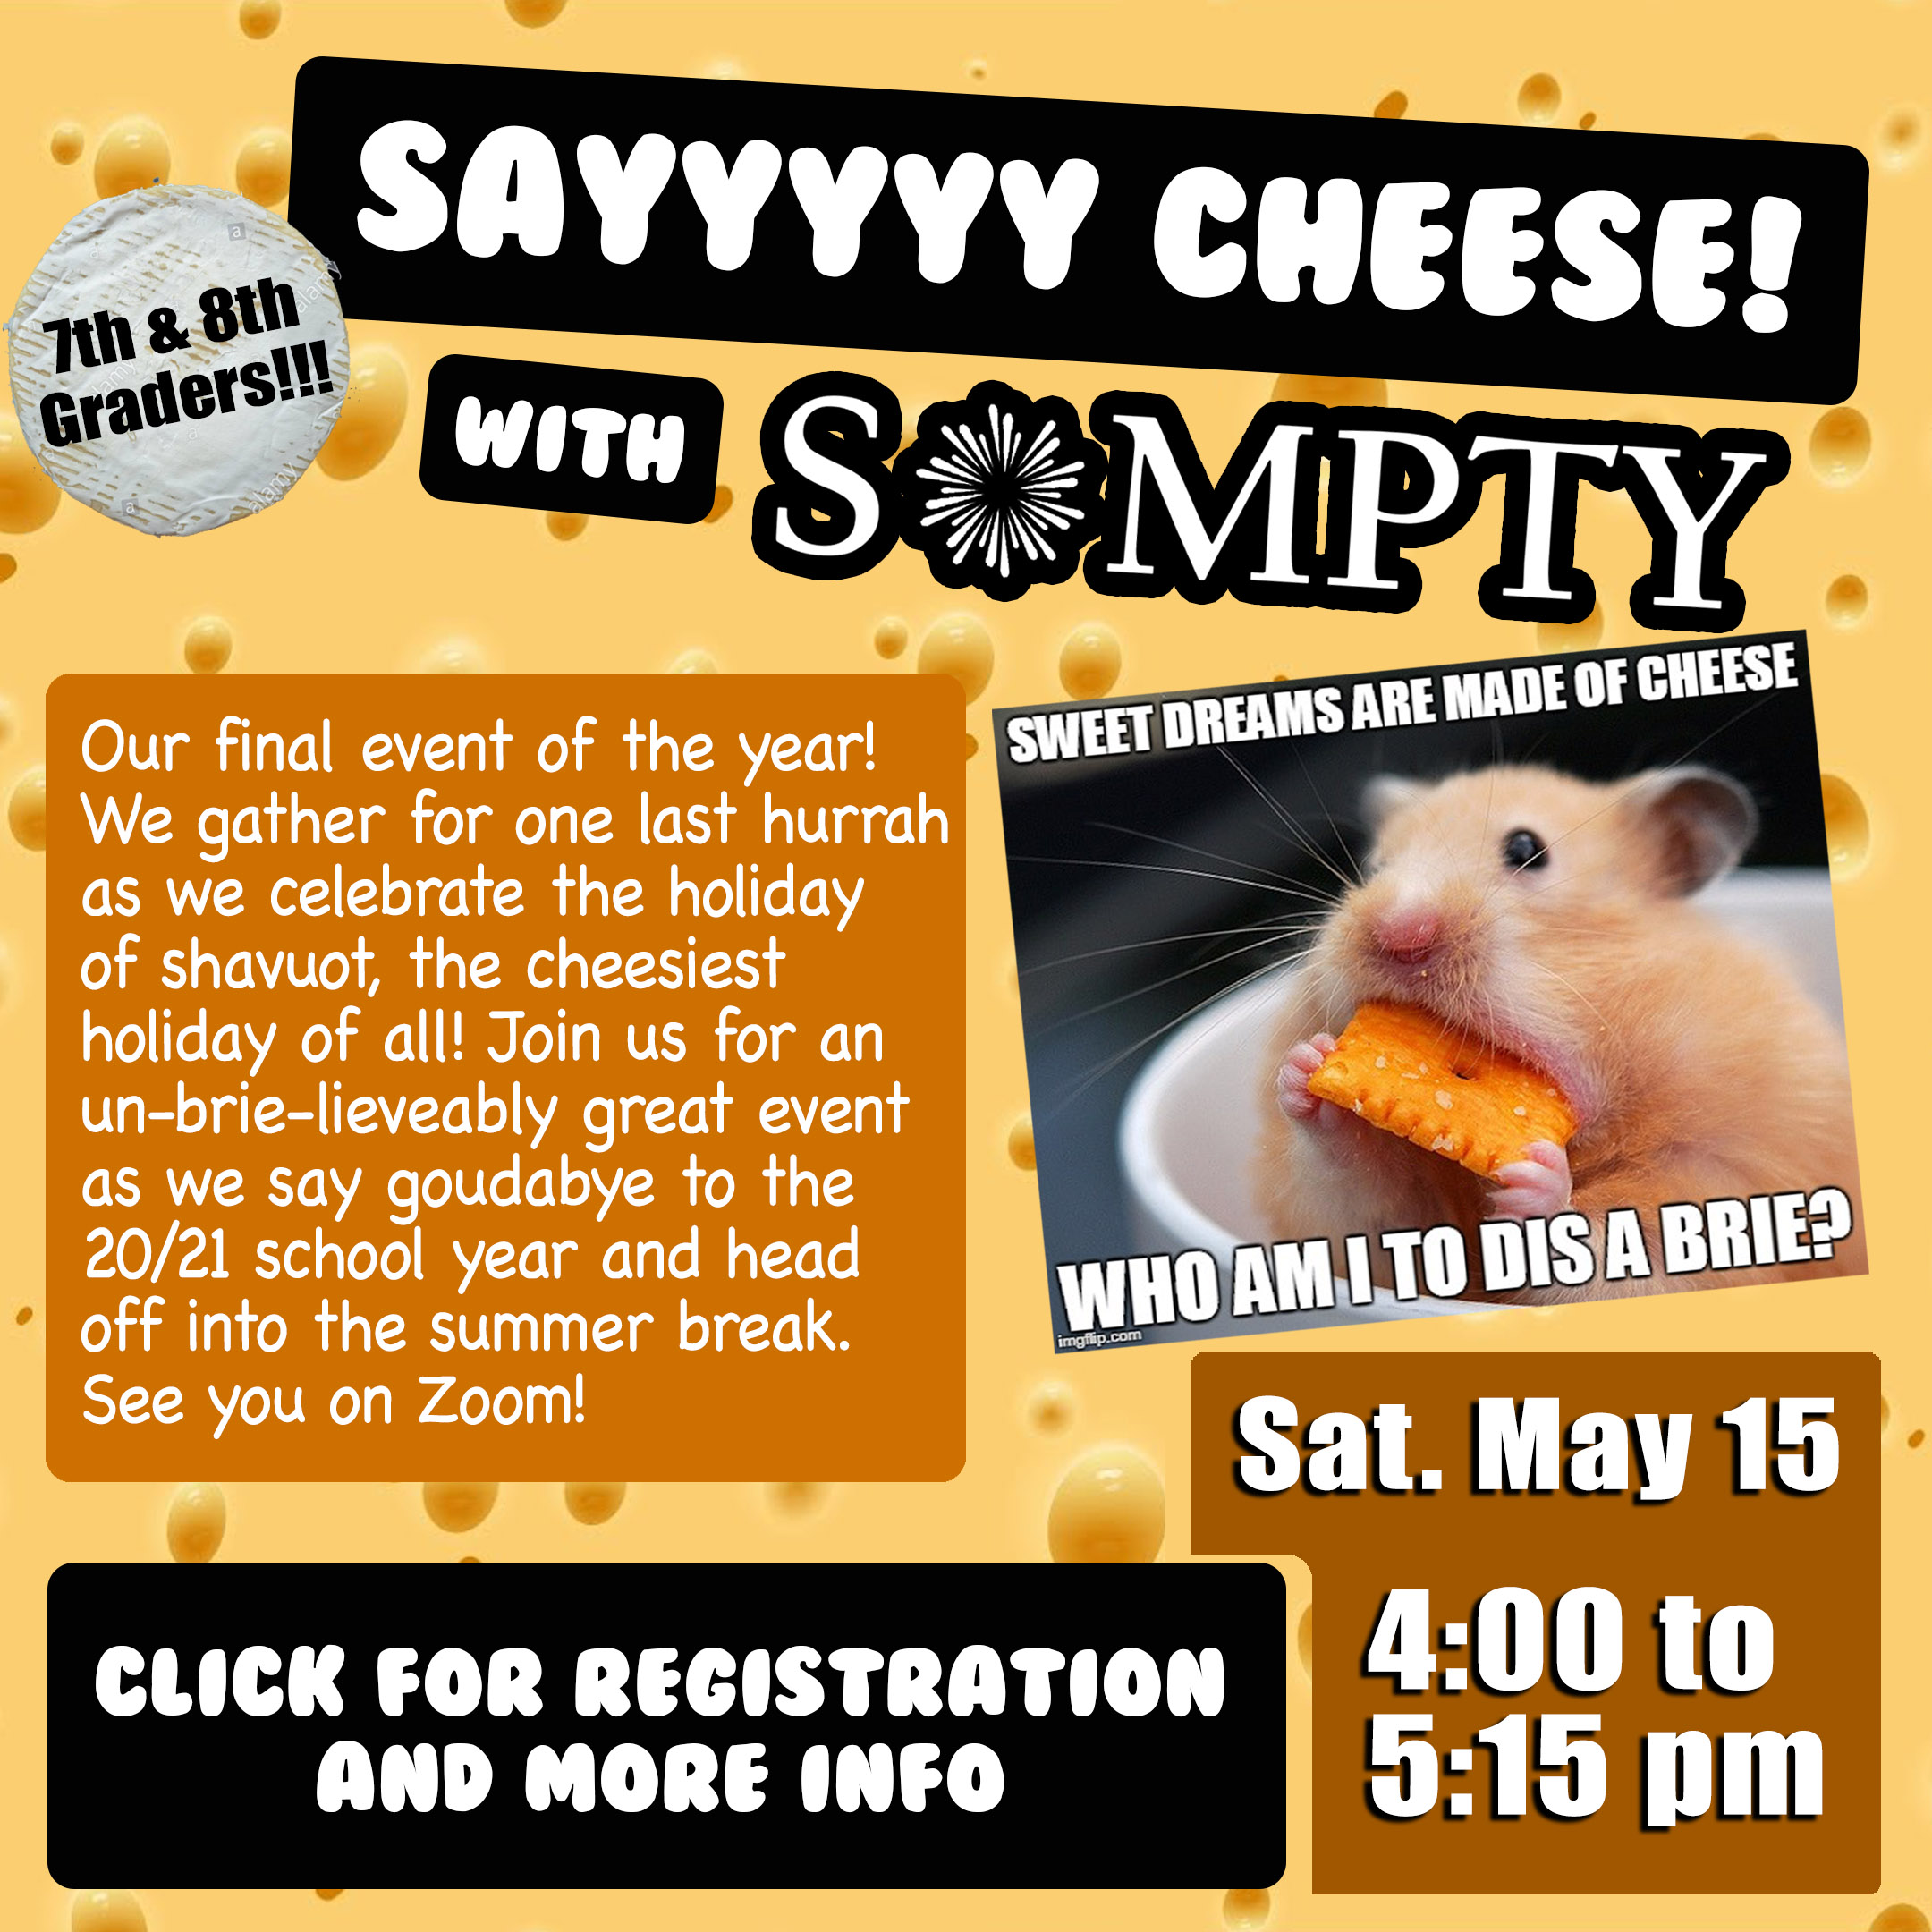 say cheese with SoMPTY with CLICK v2